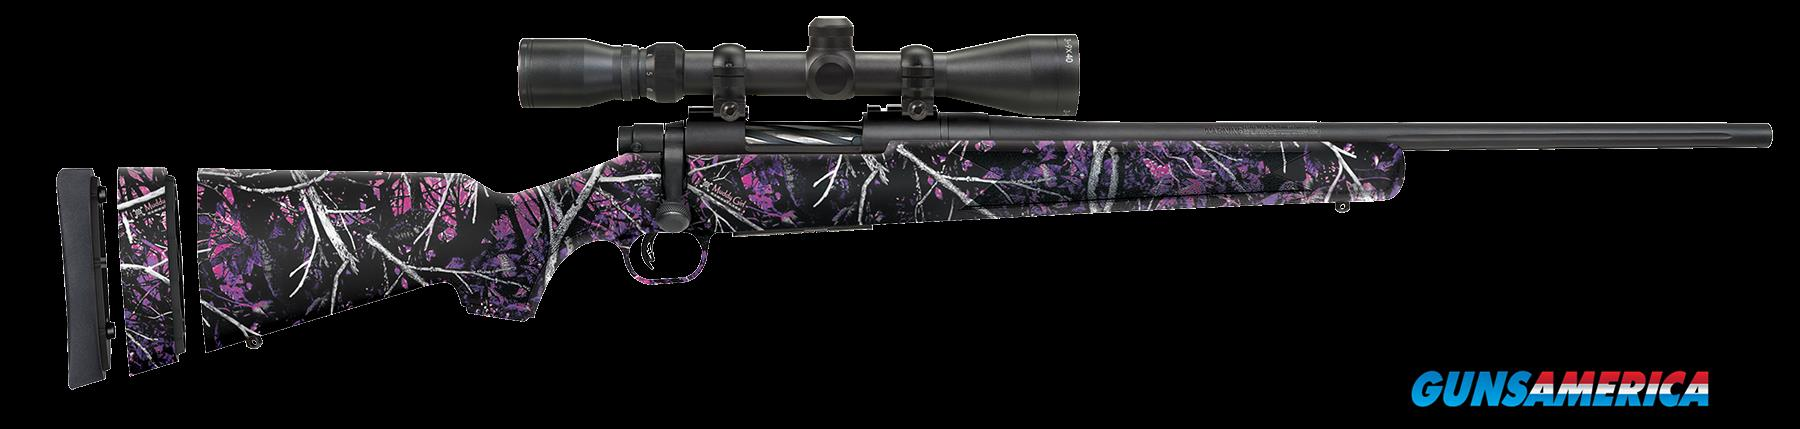 "Mossberg 27926 Patriot Youth with Scope Bolt 243 Win 20"" 5+1 Synthetic Muddy Girl Stk Blued  Guns > Rifles > MN Misc Rifles"